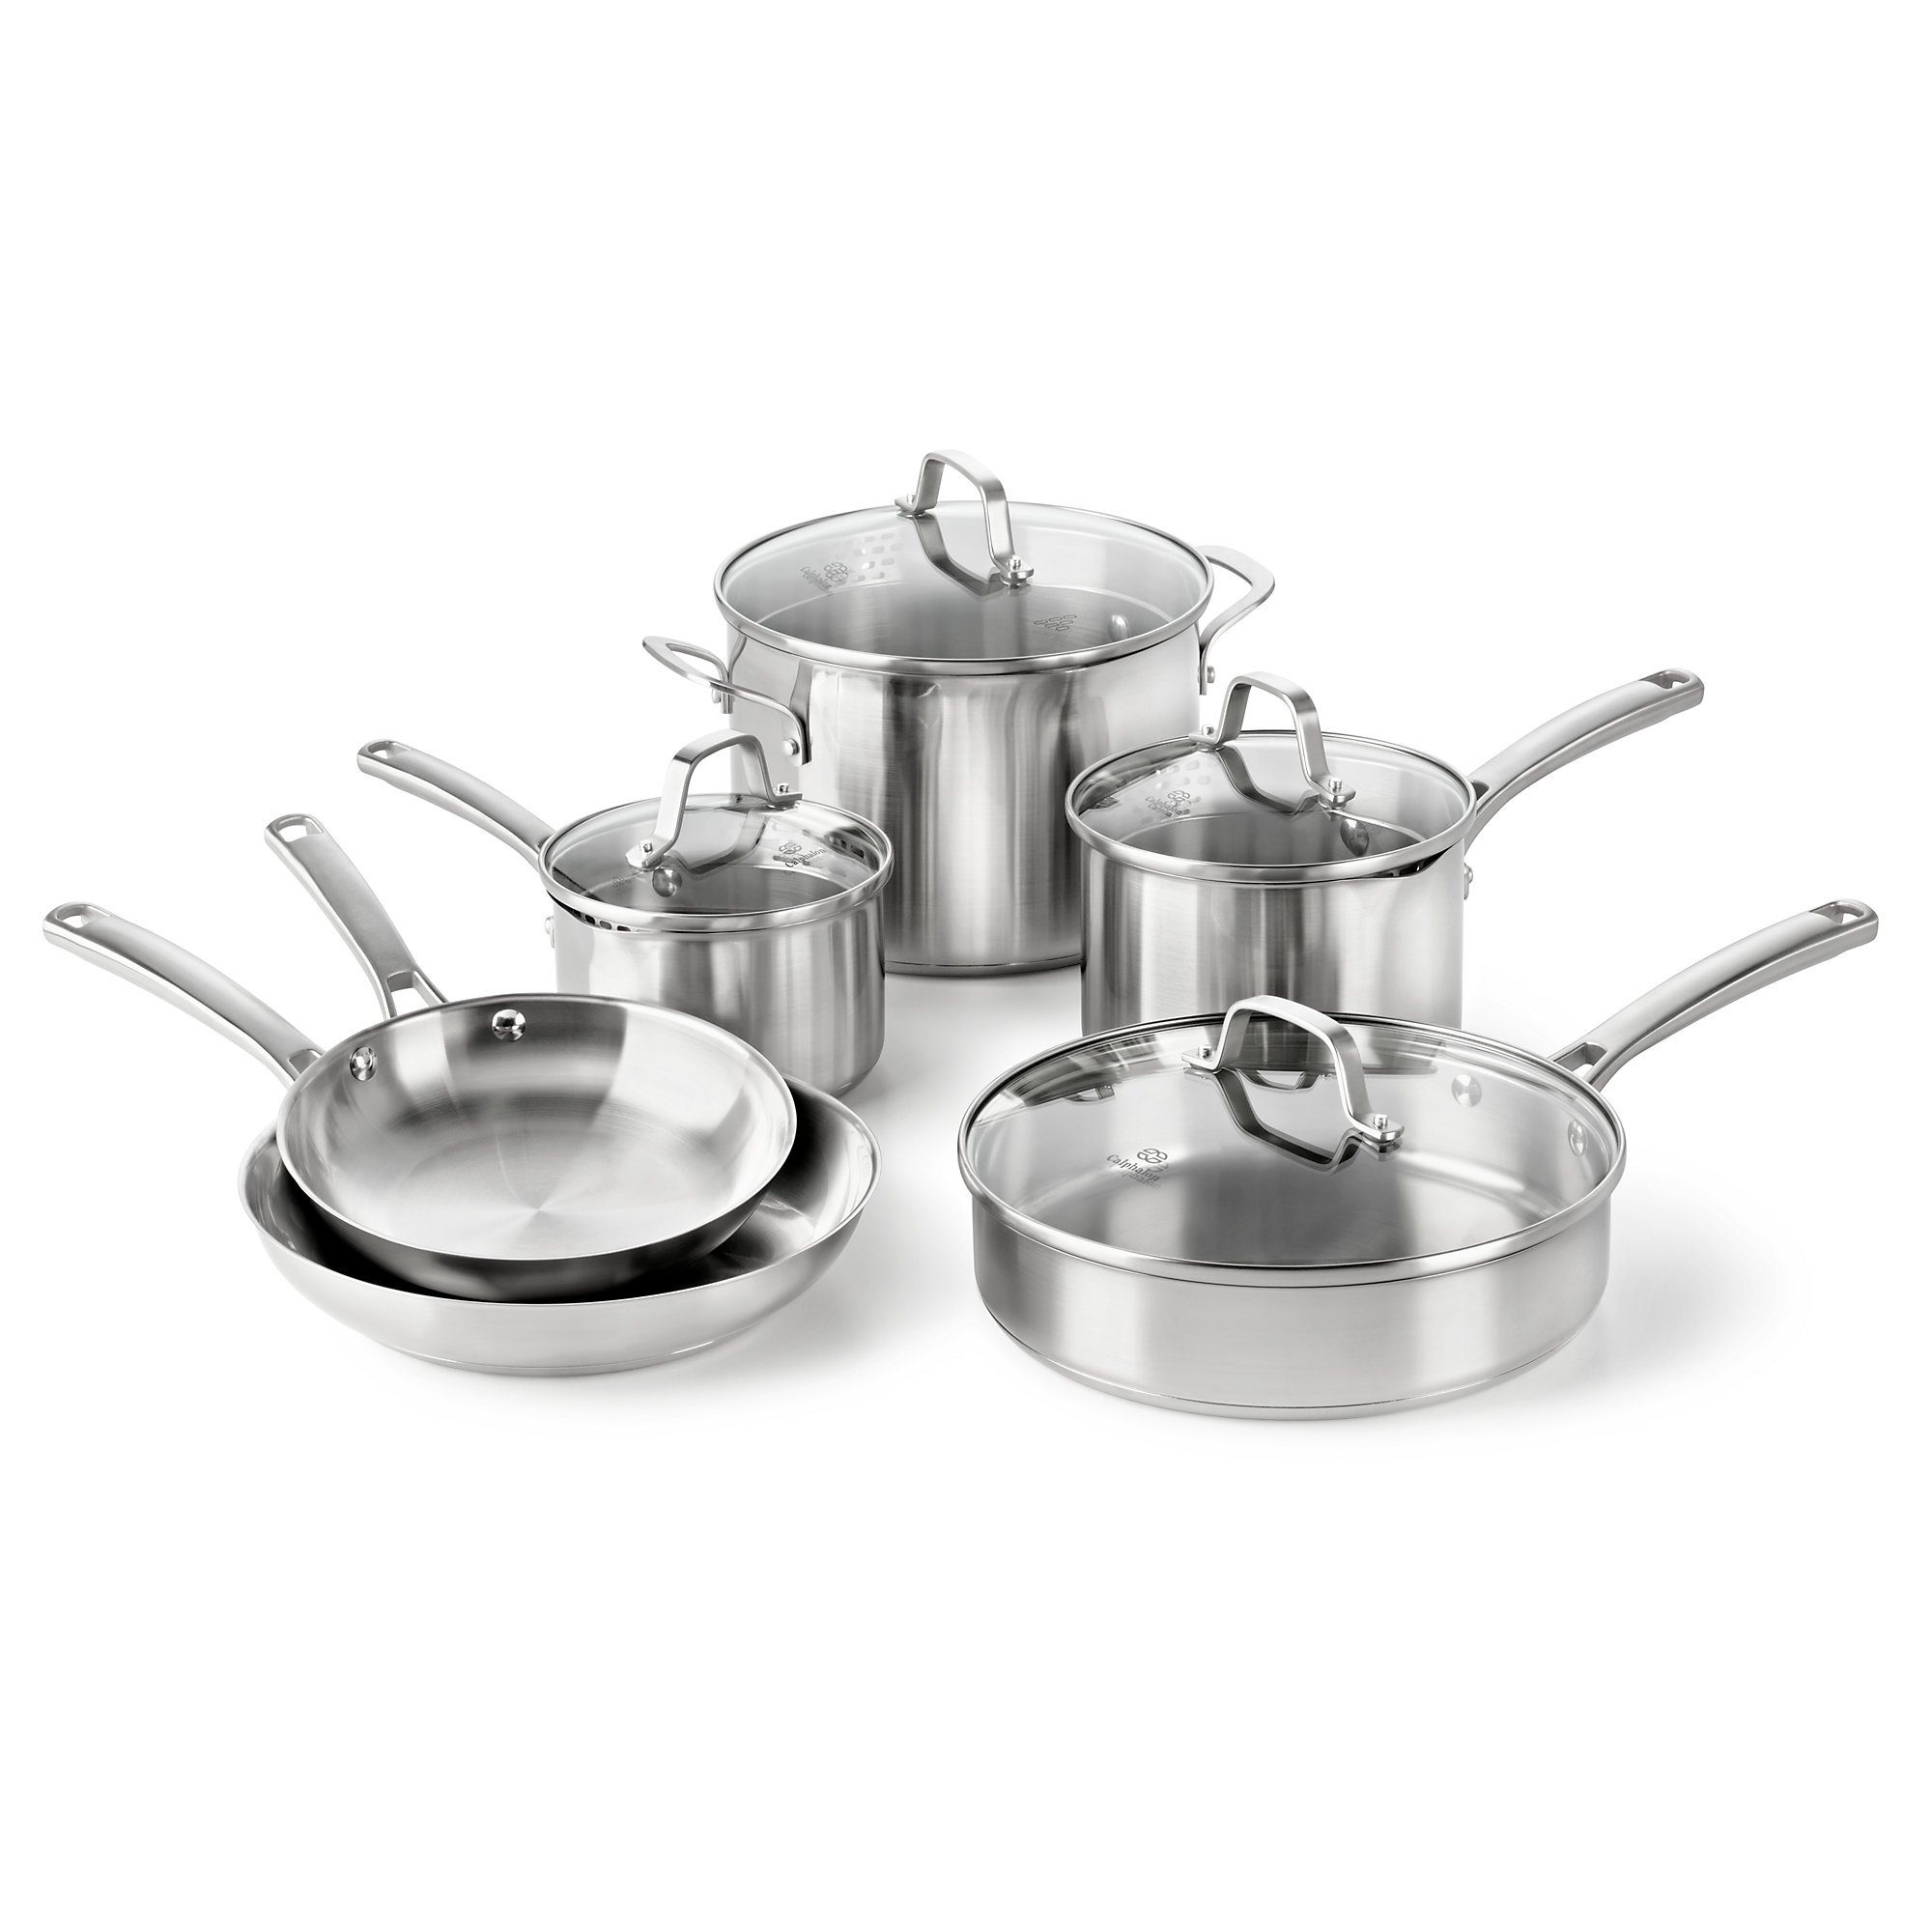 Calphalon Classic Stainless Steel Cookware Set, 10-Piece